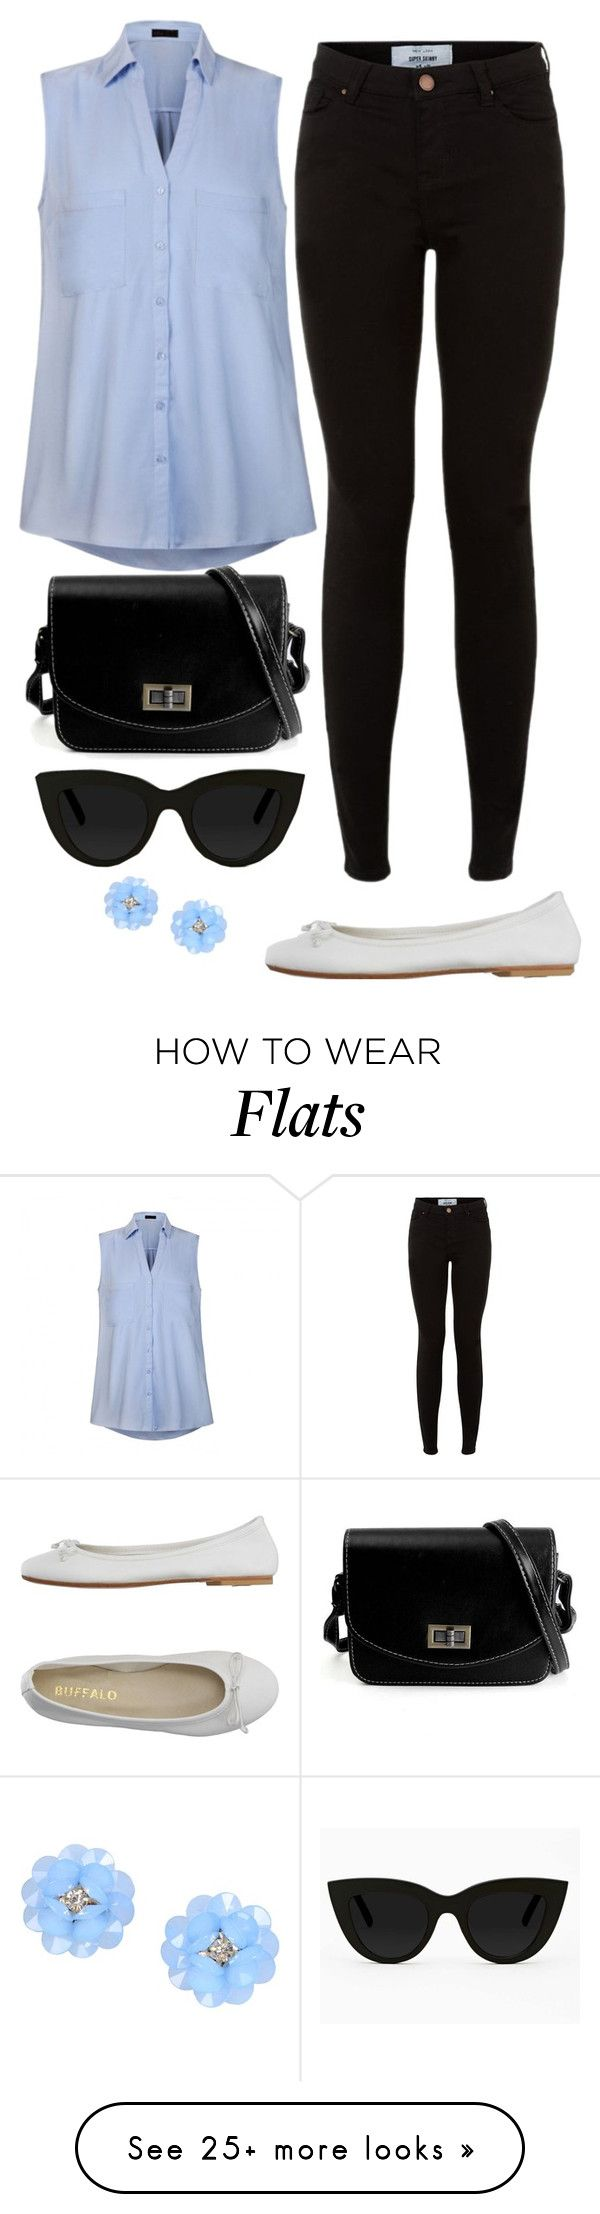 """Untitled #289"" by kimberley-hampton on Polyvore featuring Ally Fashion, DIENNEG, Quay and Dettagli"